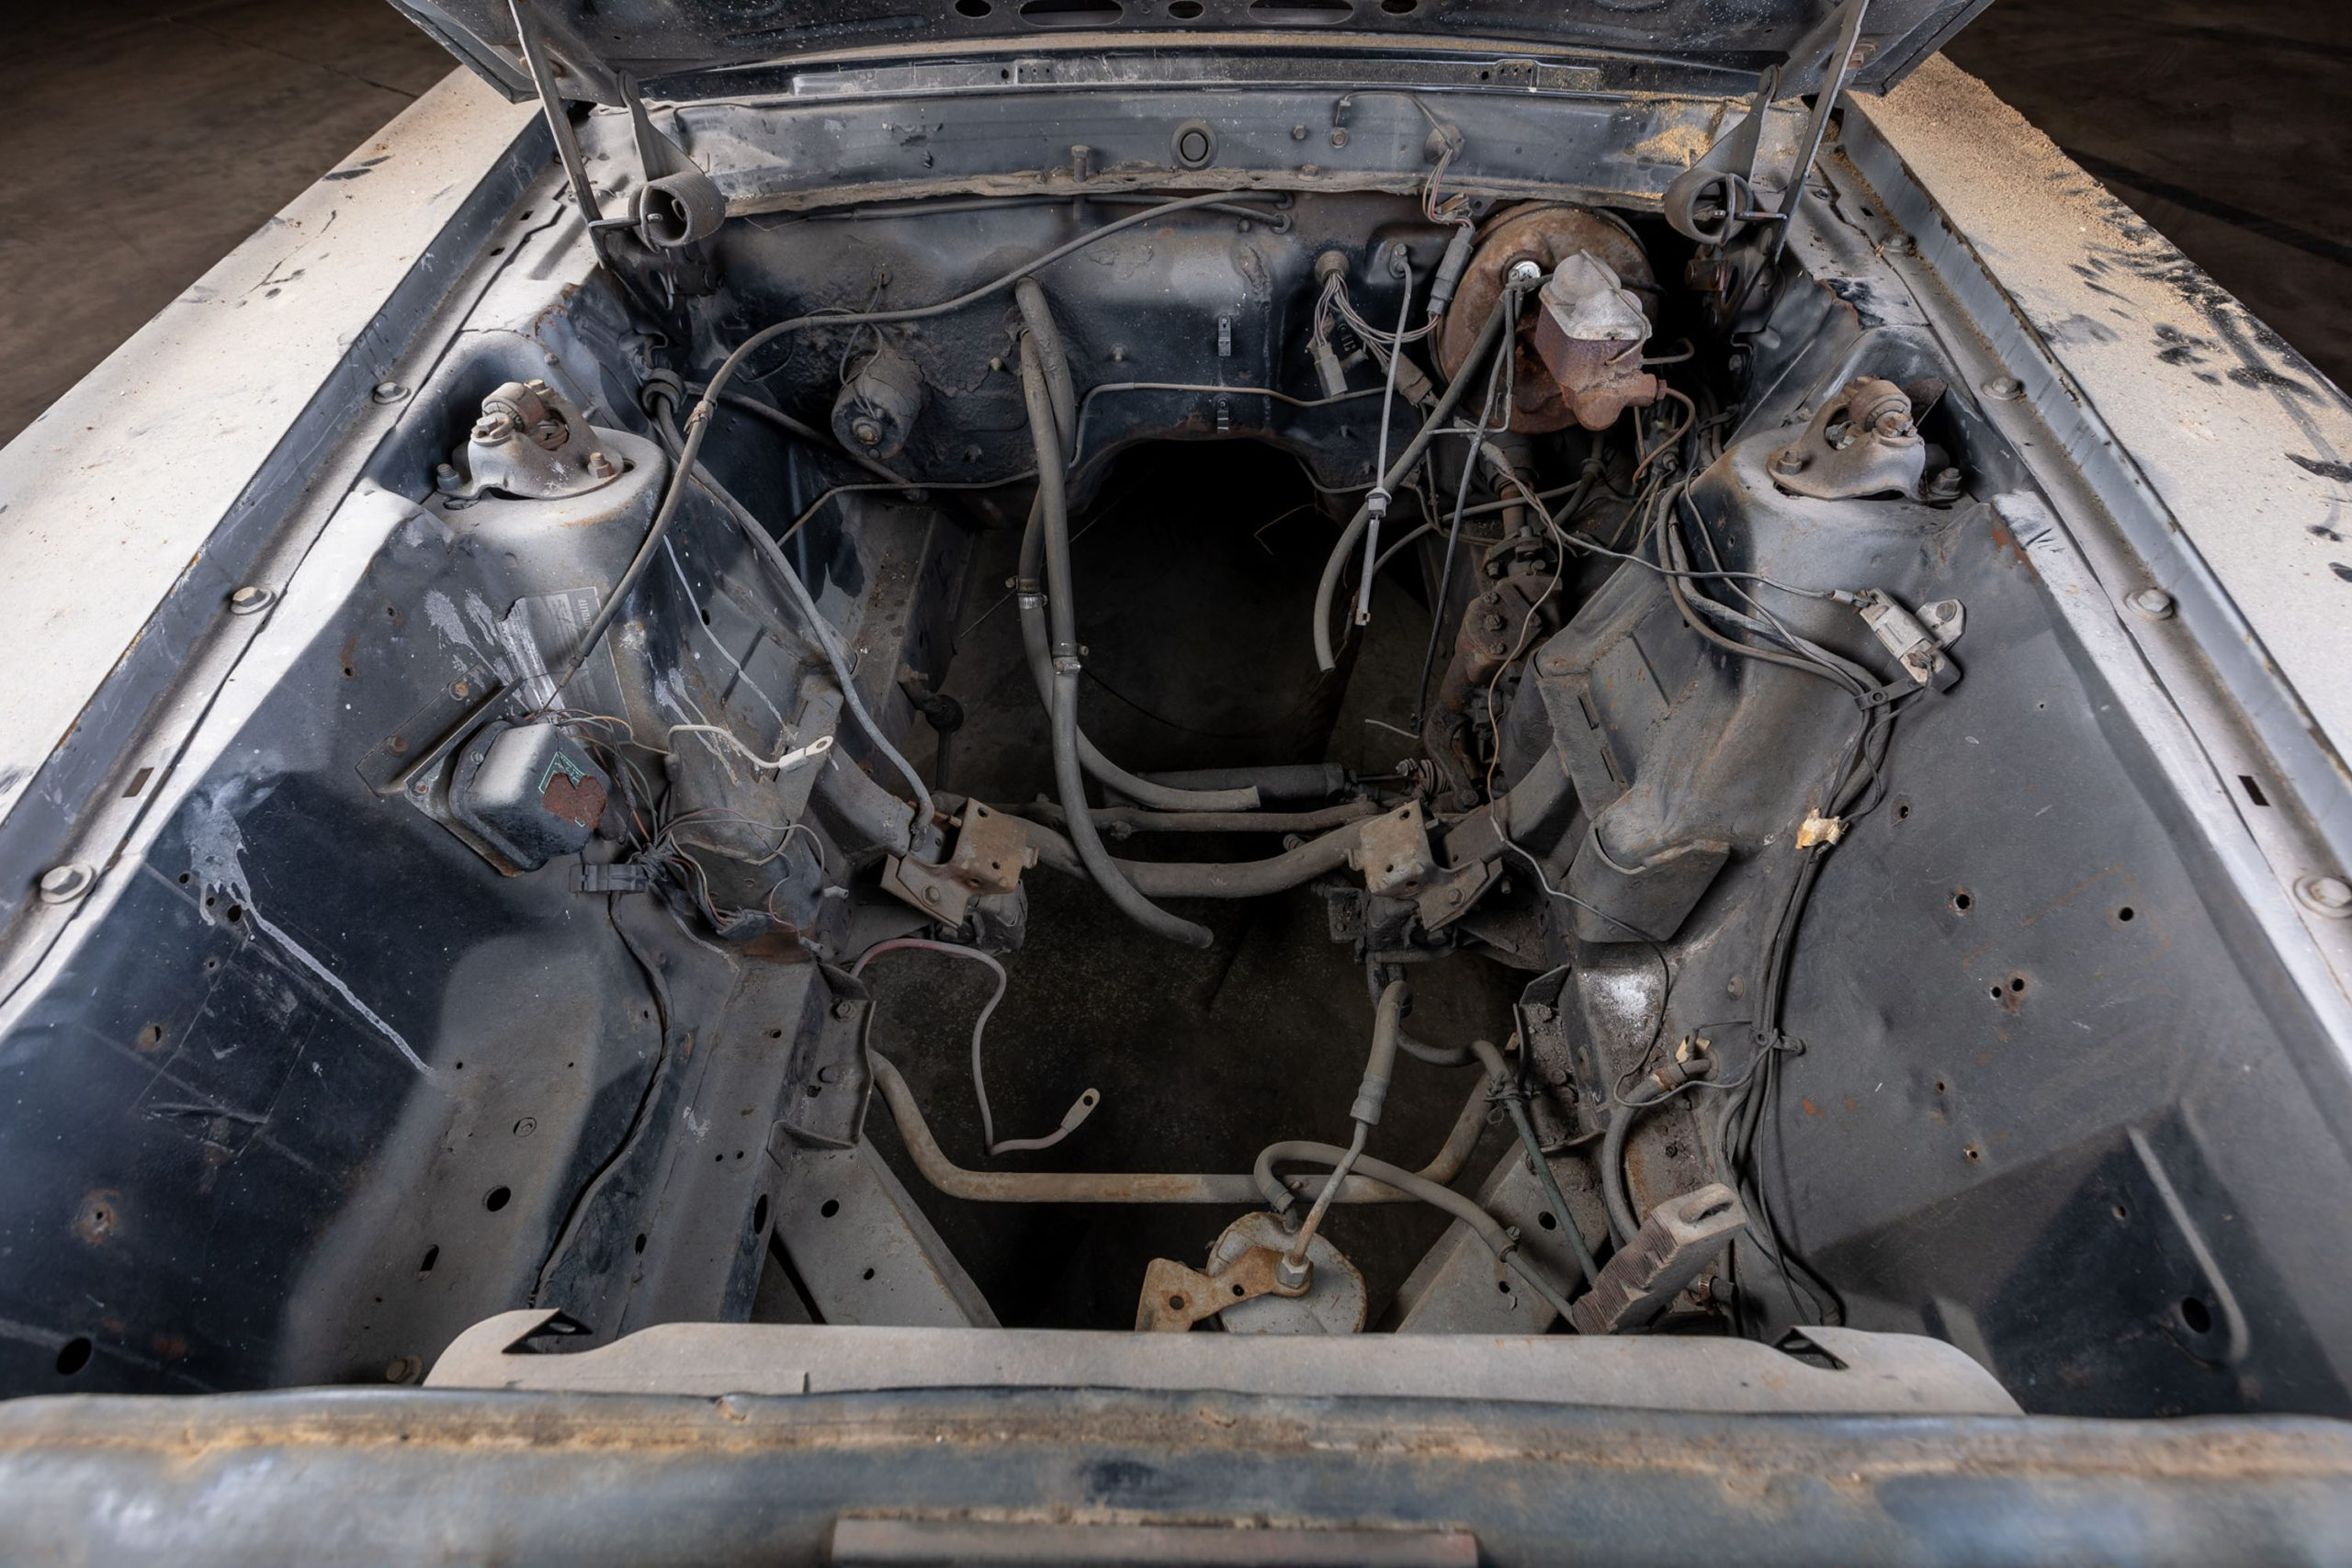 1969 Ford Mustang Boss 429 engine bay